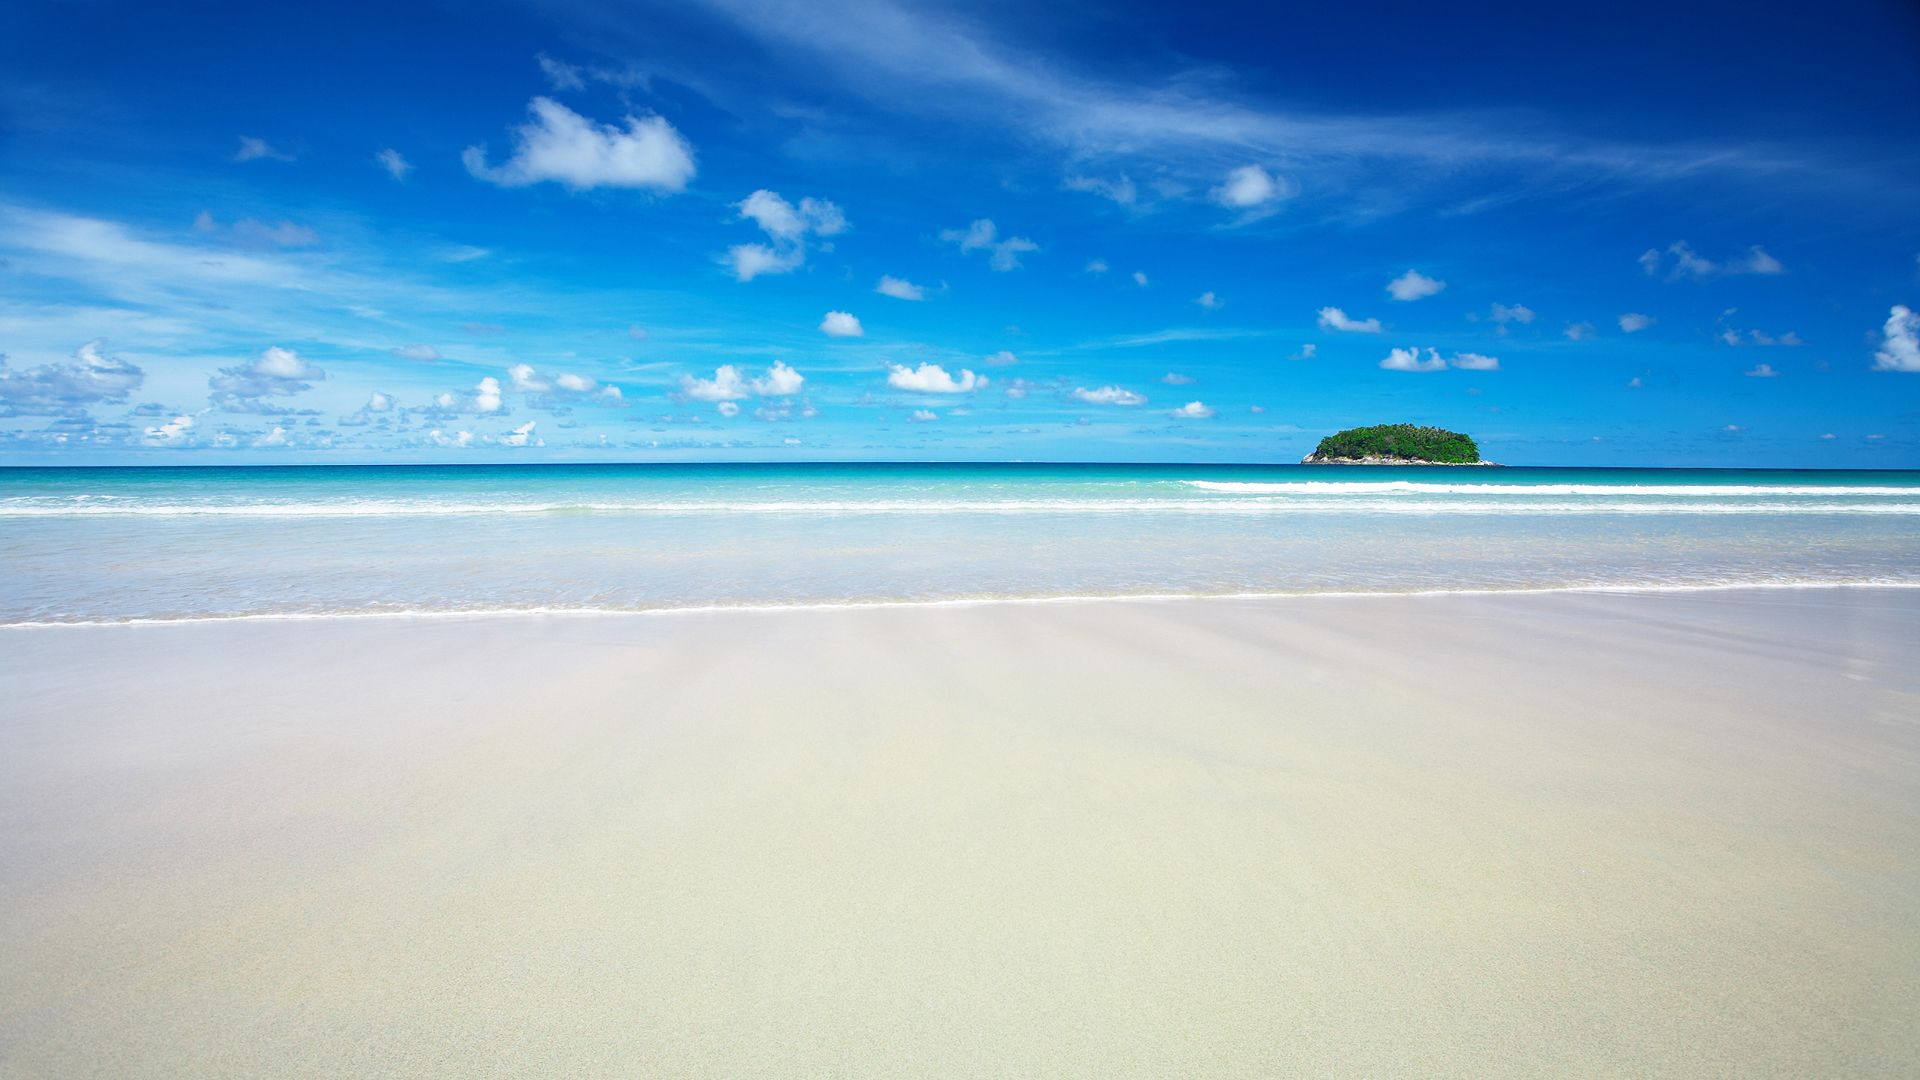 HD Sky Blue Beach Wallpapers HD Wallpapers 1920x1080